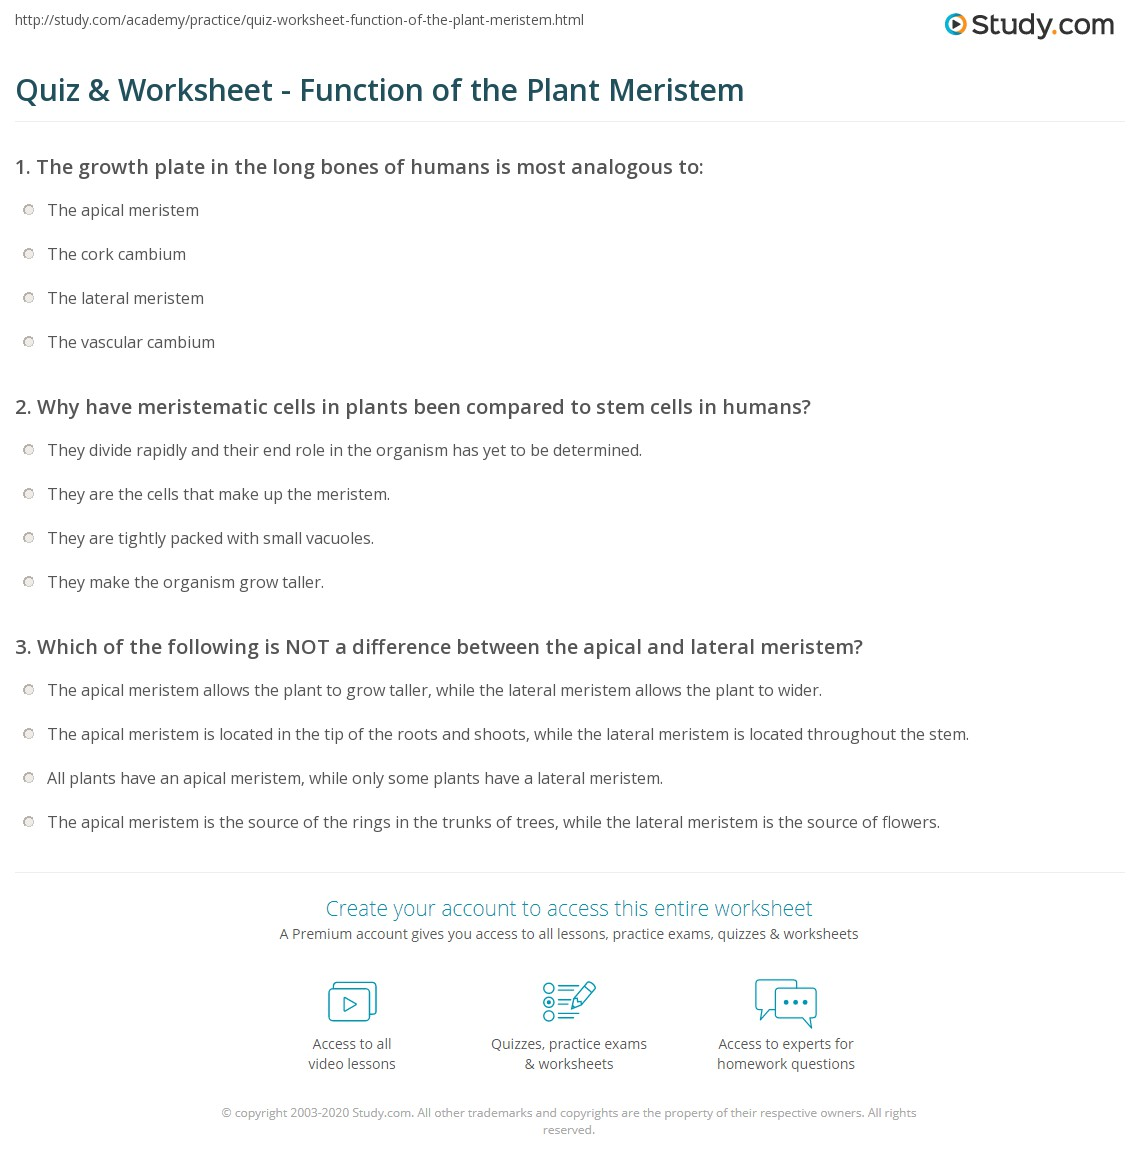 worksheet Worksheet Function quiz worksheet function of the plant meristem study com print definition worksheet